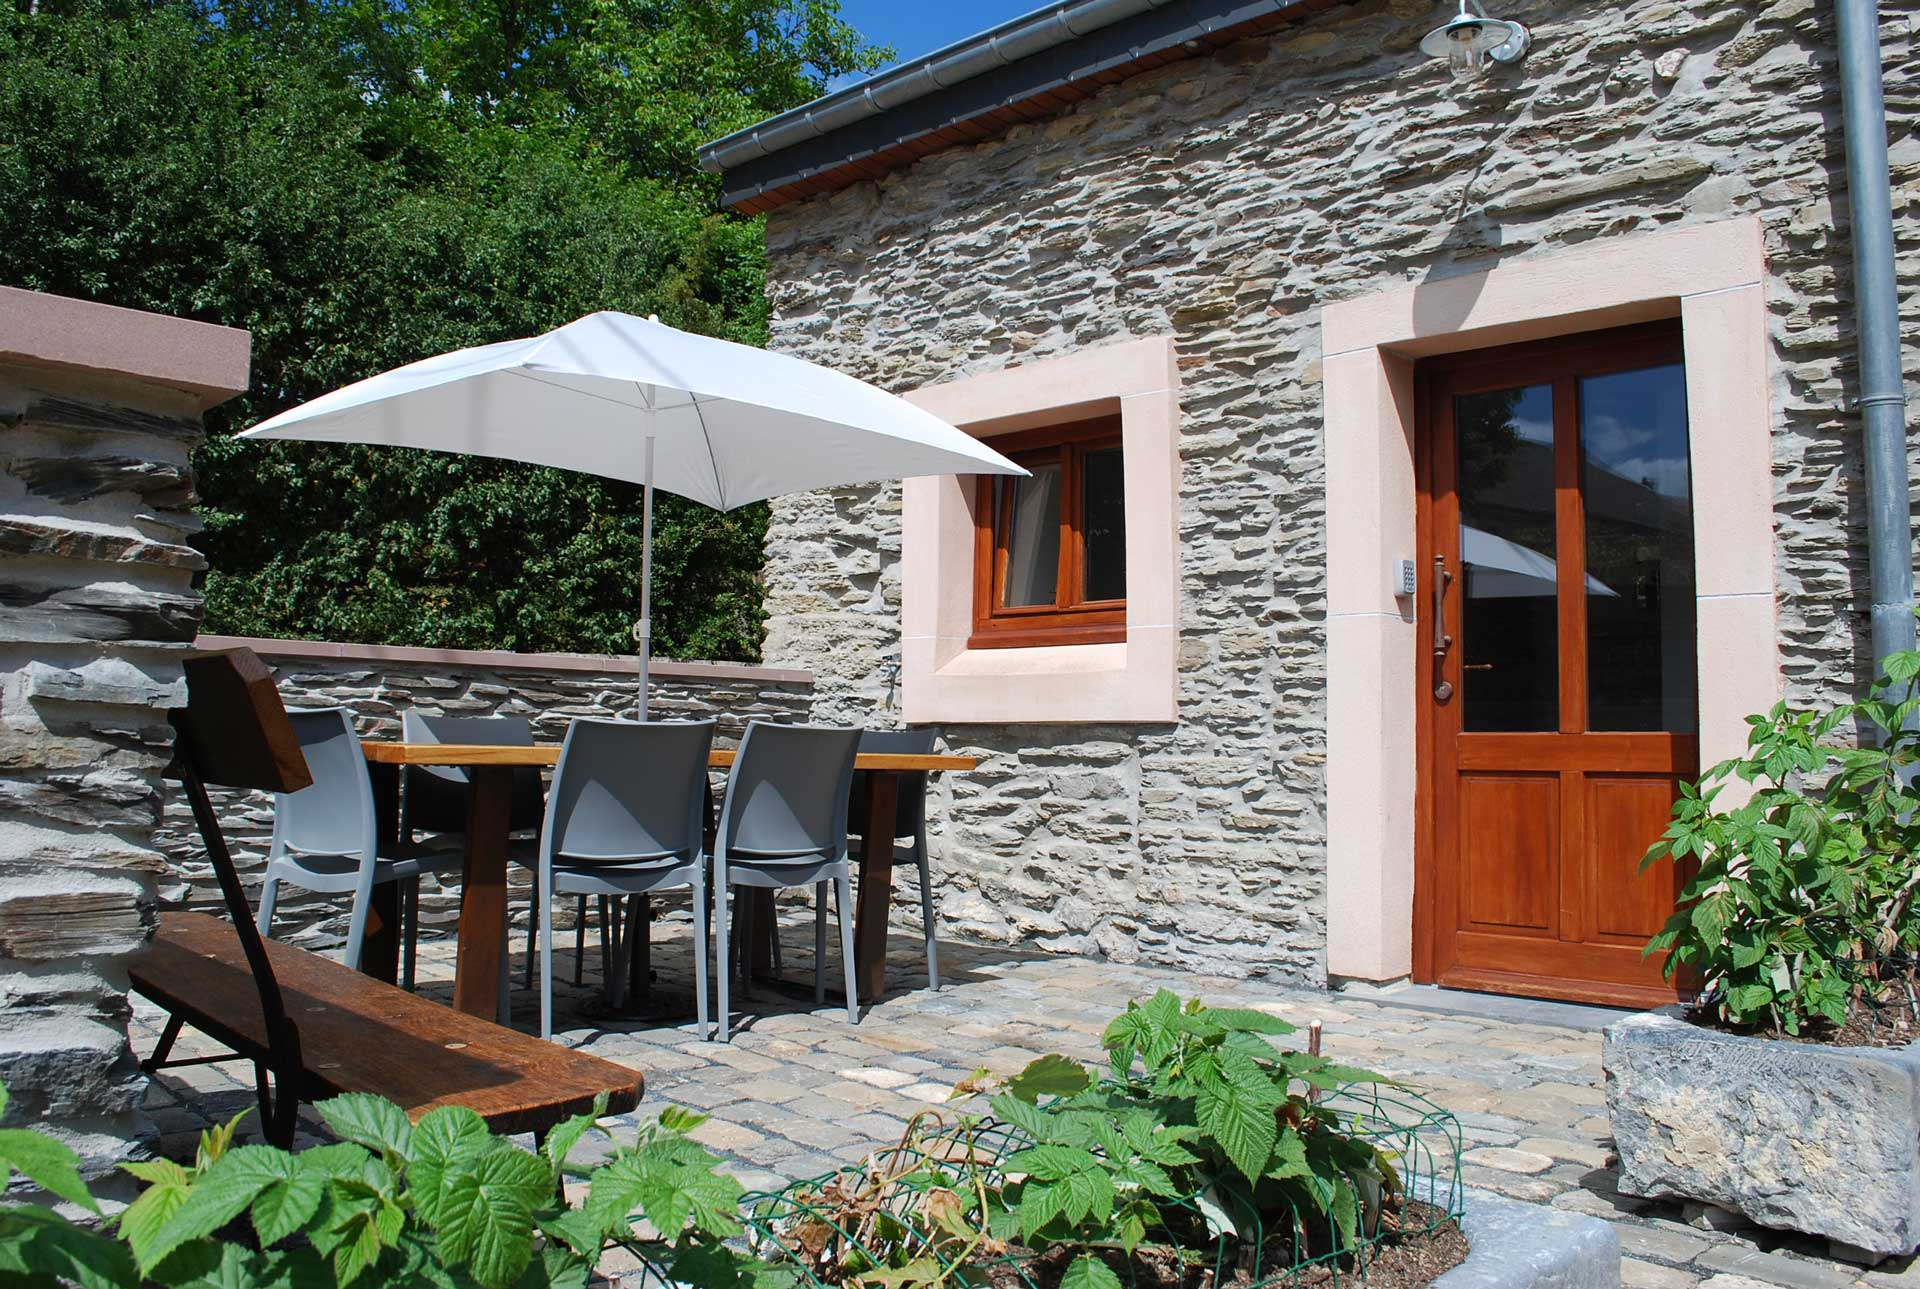 Une Heure Pour Soi Fameck Tarifs bed and bedot | cosy cottage for 4 people in fauvillers on